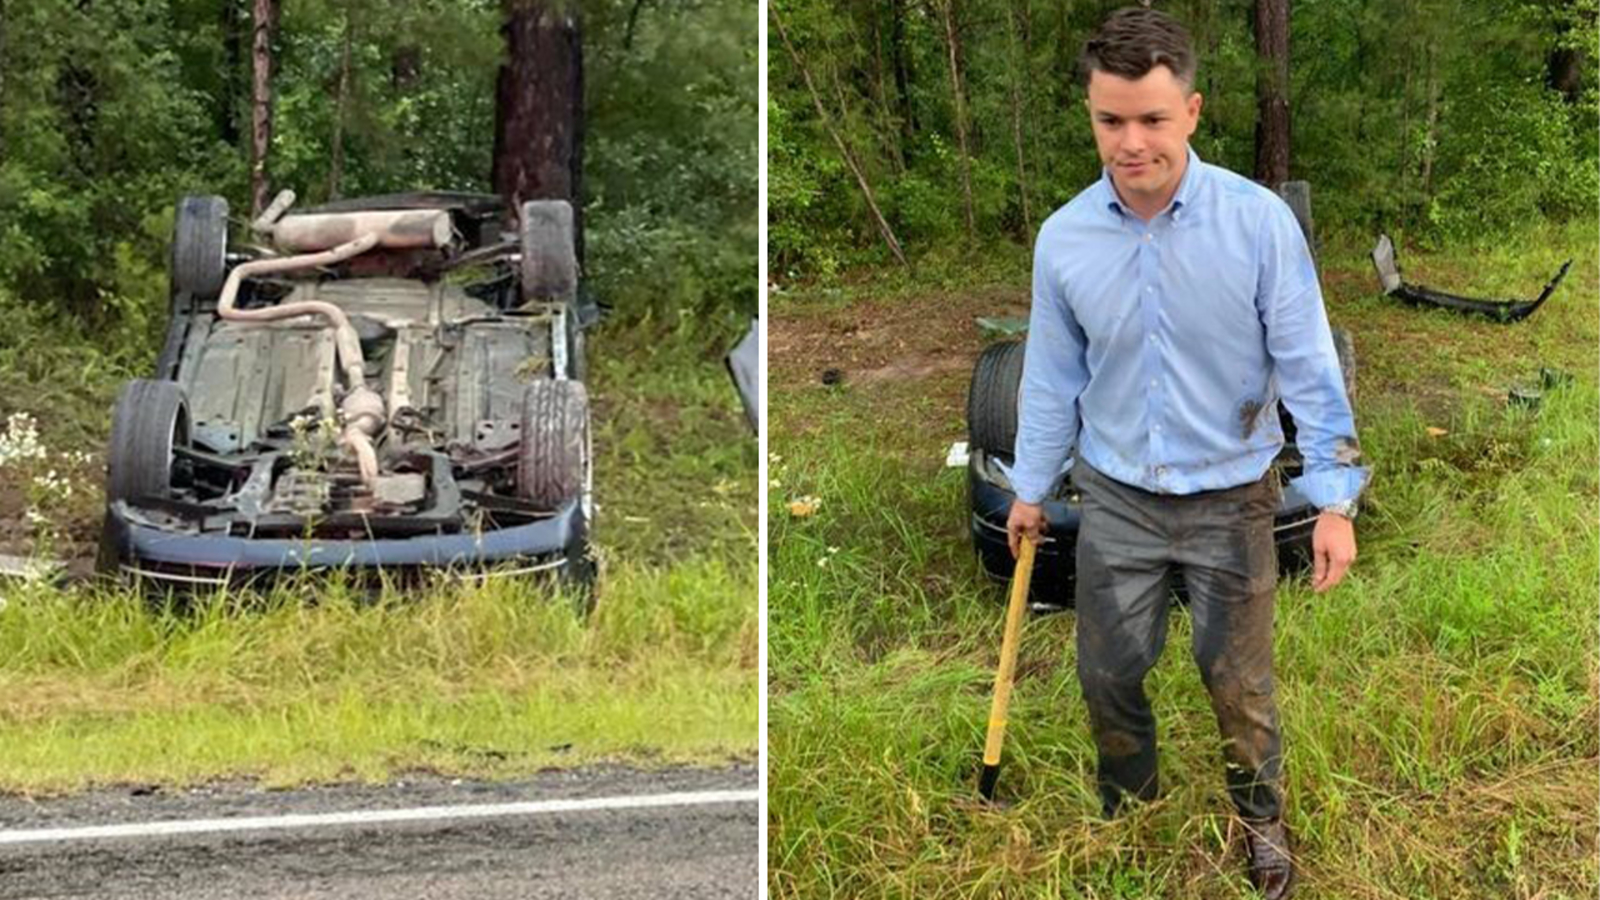 Trinity County attorney saves baby trapped in flipped car - all during a rain storm